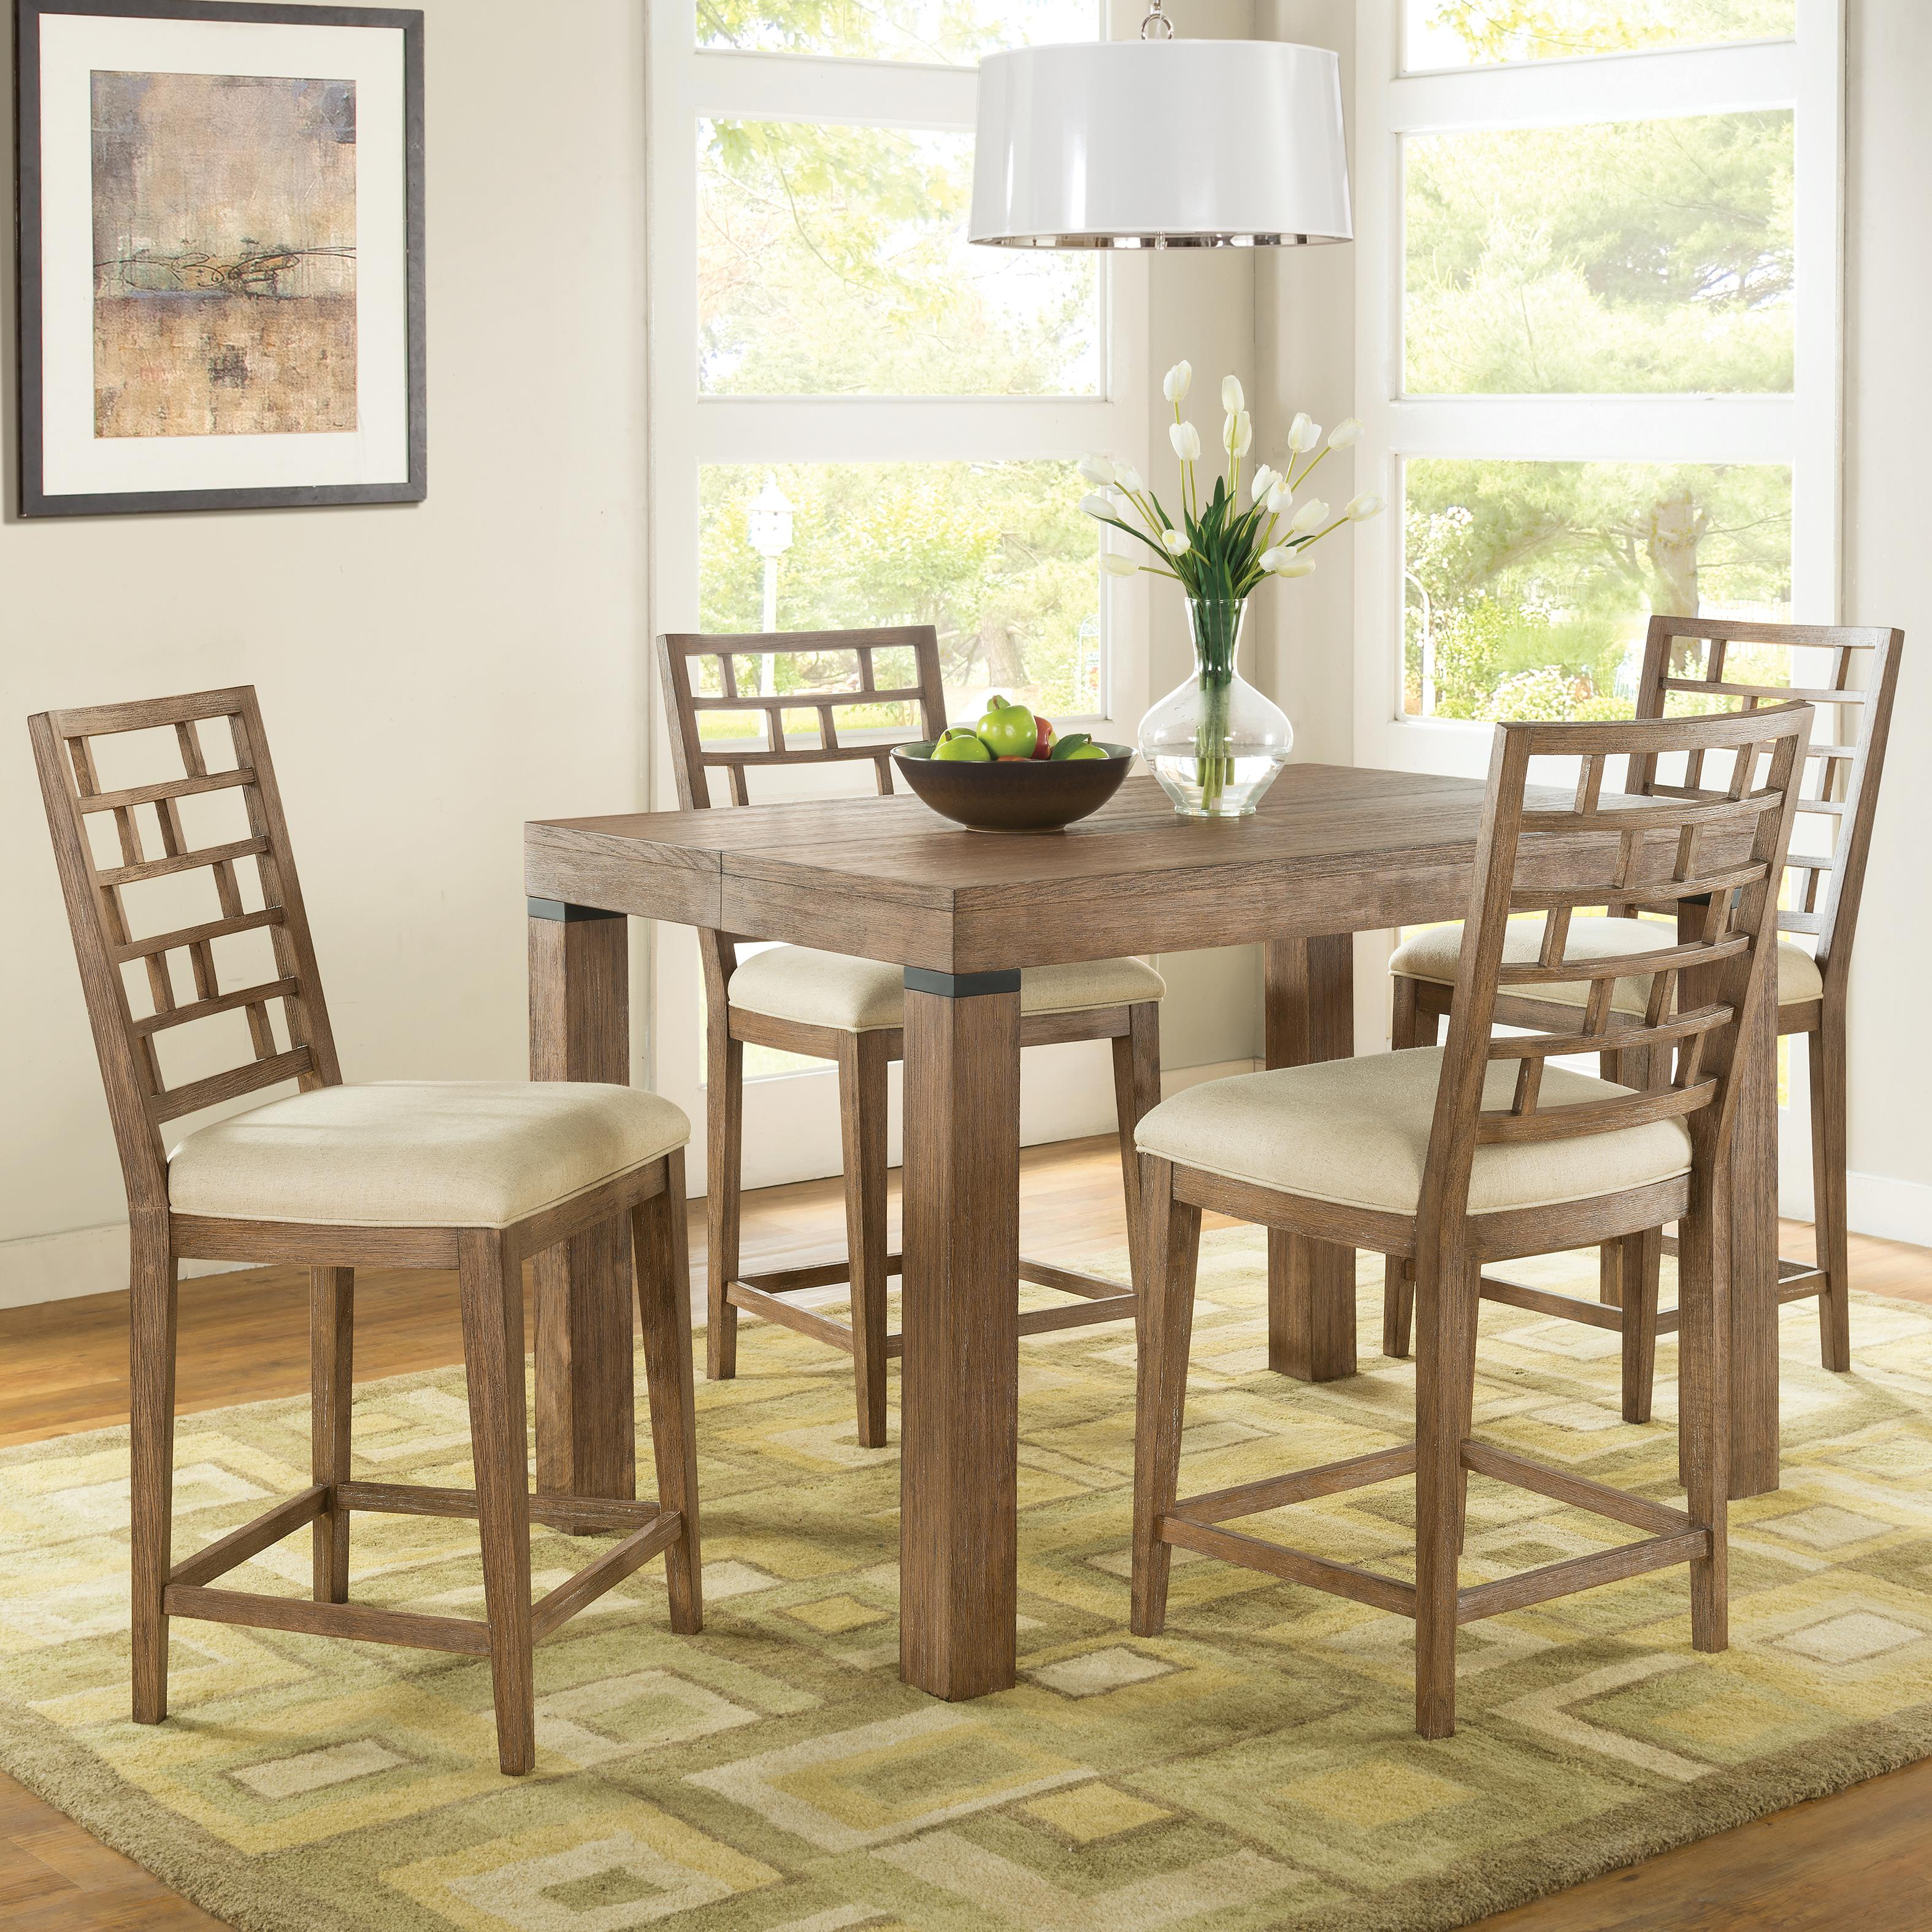 Riverside furniture mirabelle 5 piece counter height table for Hudsons furniture